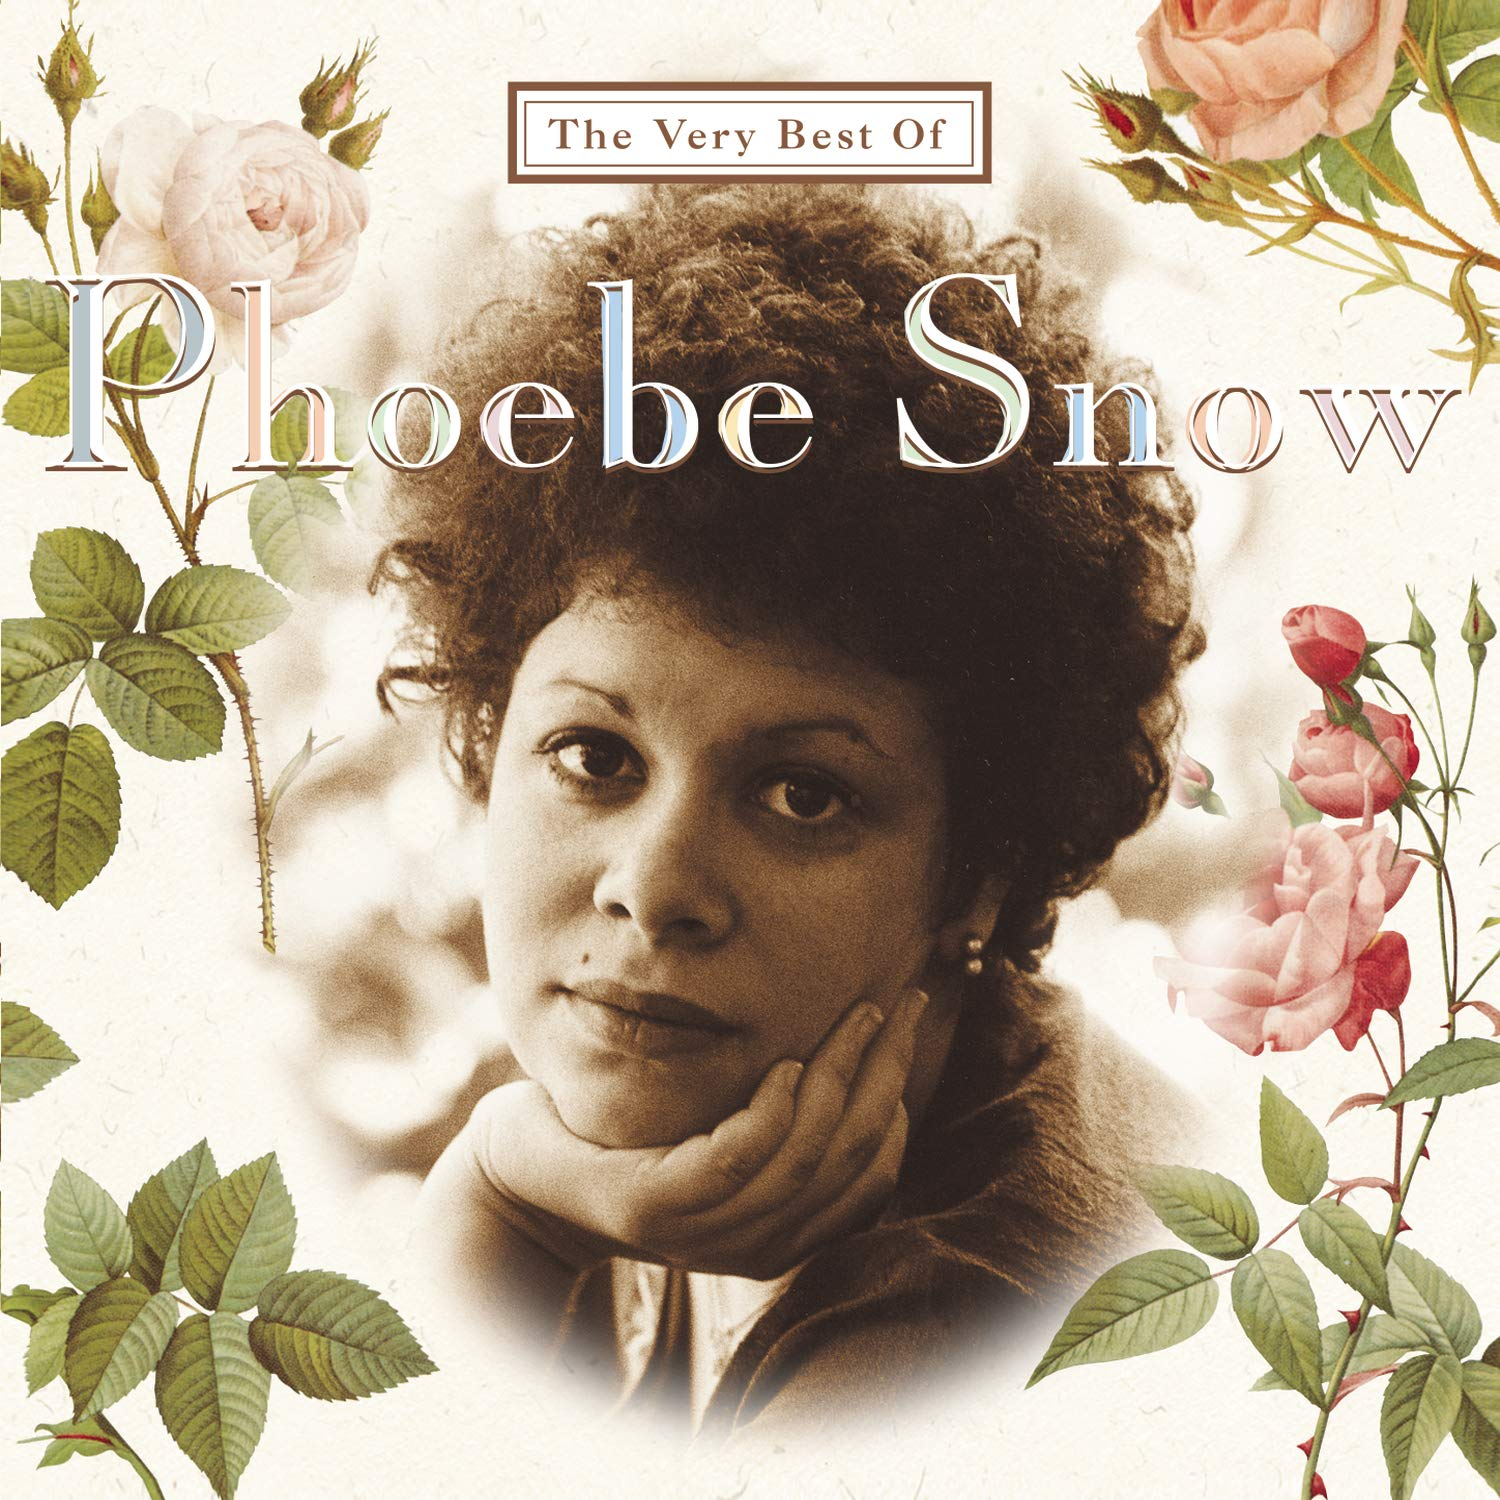 Phoebe Snow - The Very Best Of Phoebe Snow - Amazon.com Music